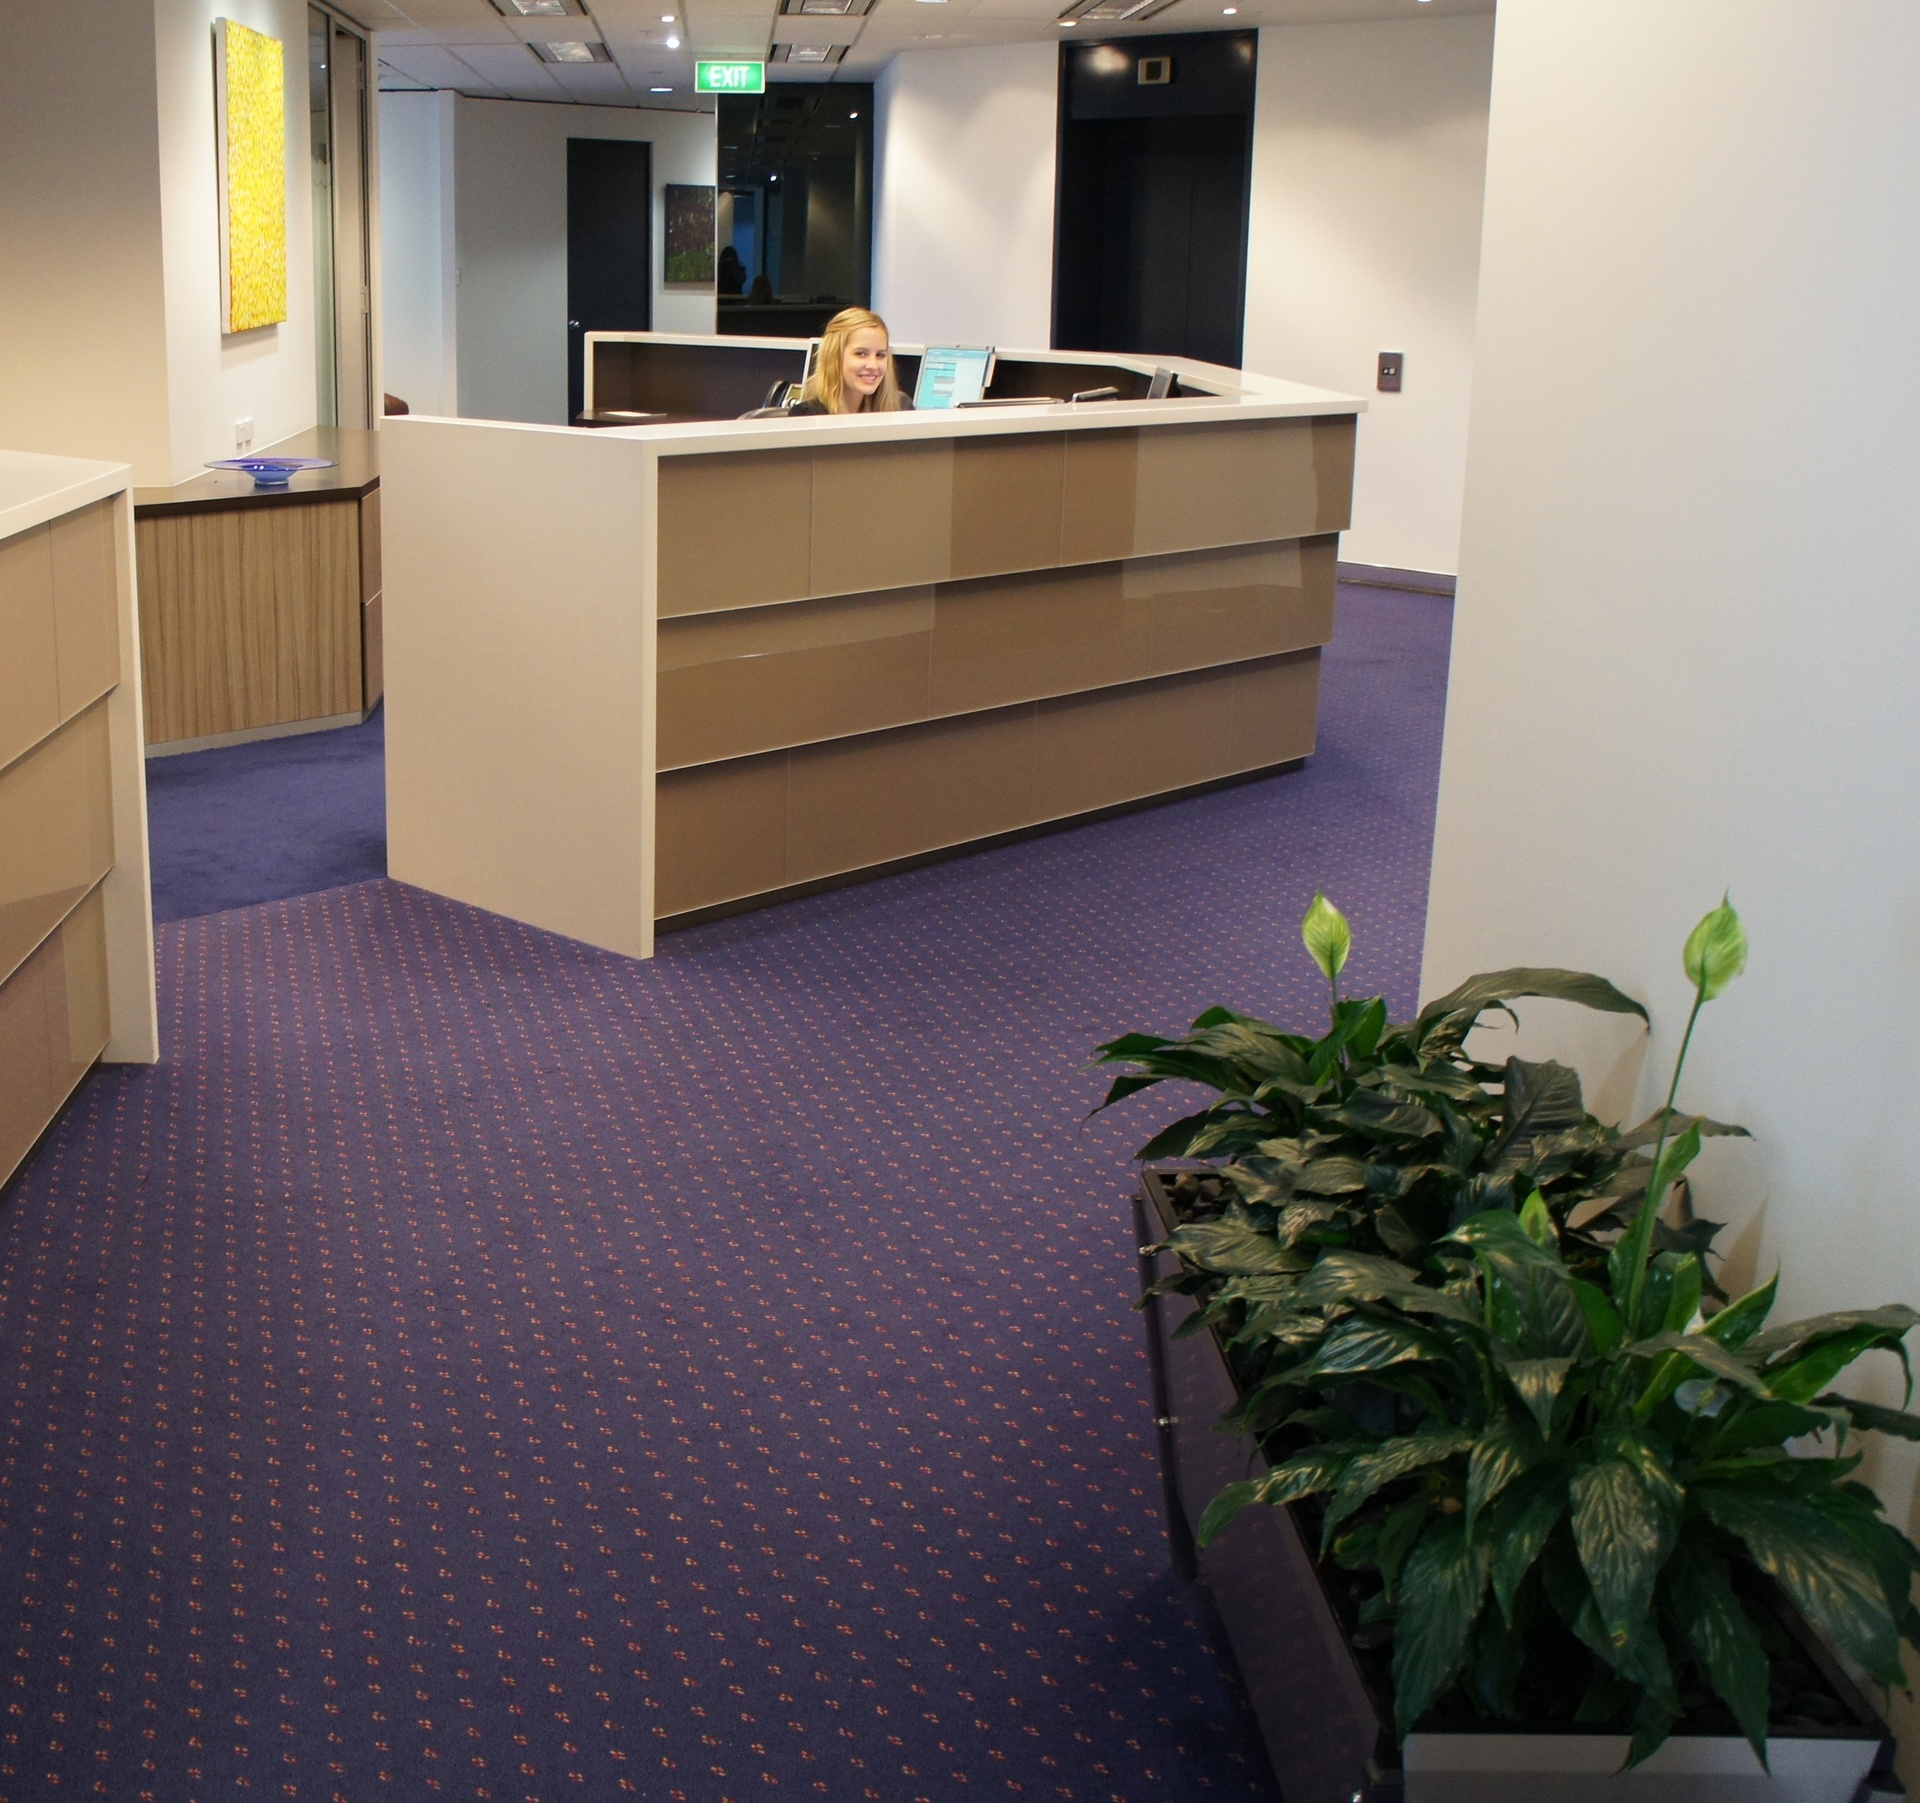 TOP QUALITY OFFICE BUILDING LOCATED IN PERTH CBD SKYLINE WITH SPECTACULAR VIEWS ACROSS KINGS PARK AND SWAN RIVER